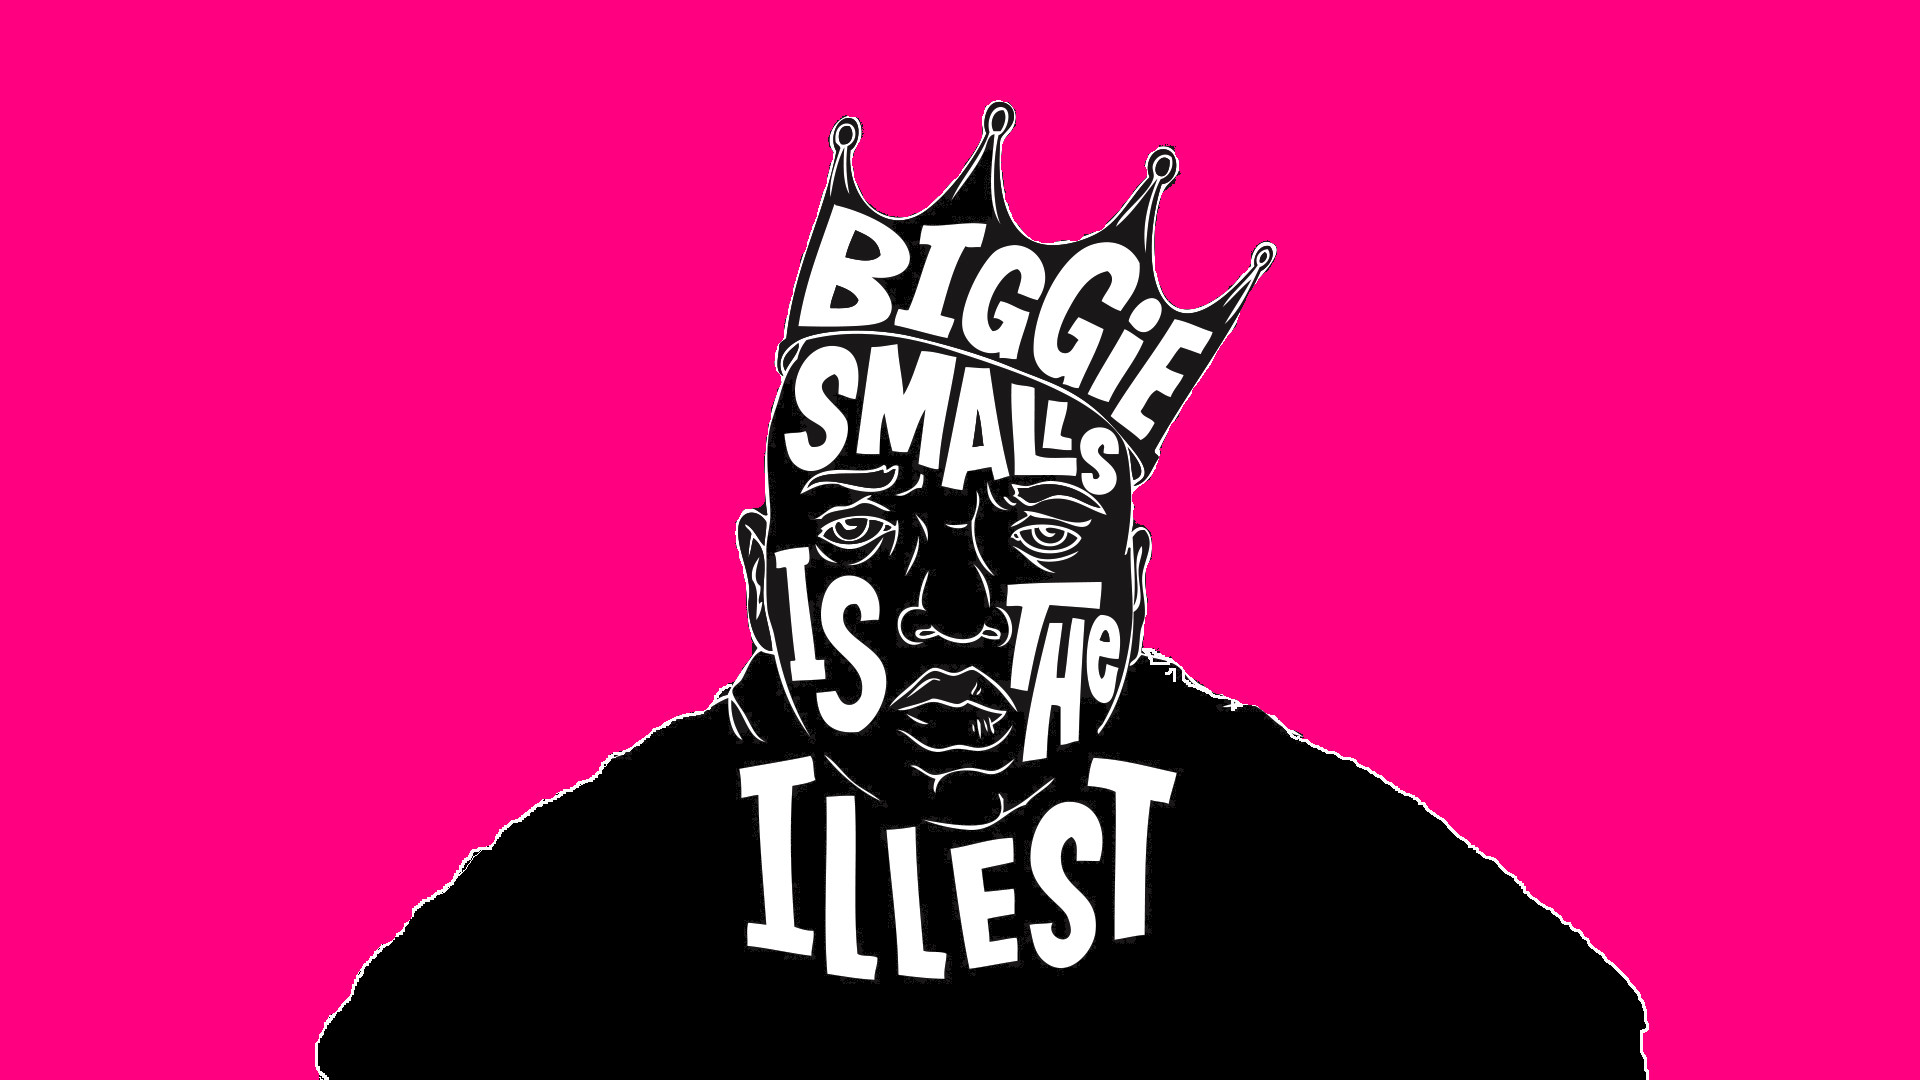 Biggie Smalls is the Illest Wallpaper for Phones and Tablets 1920x1080